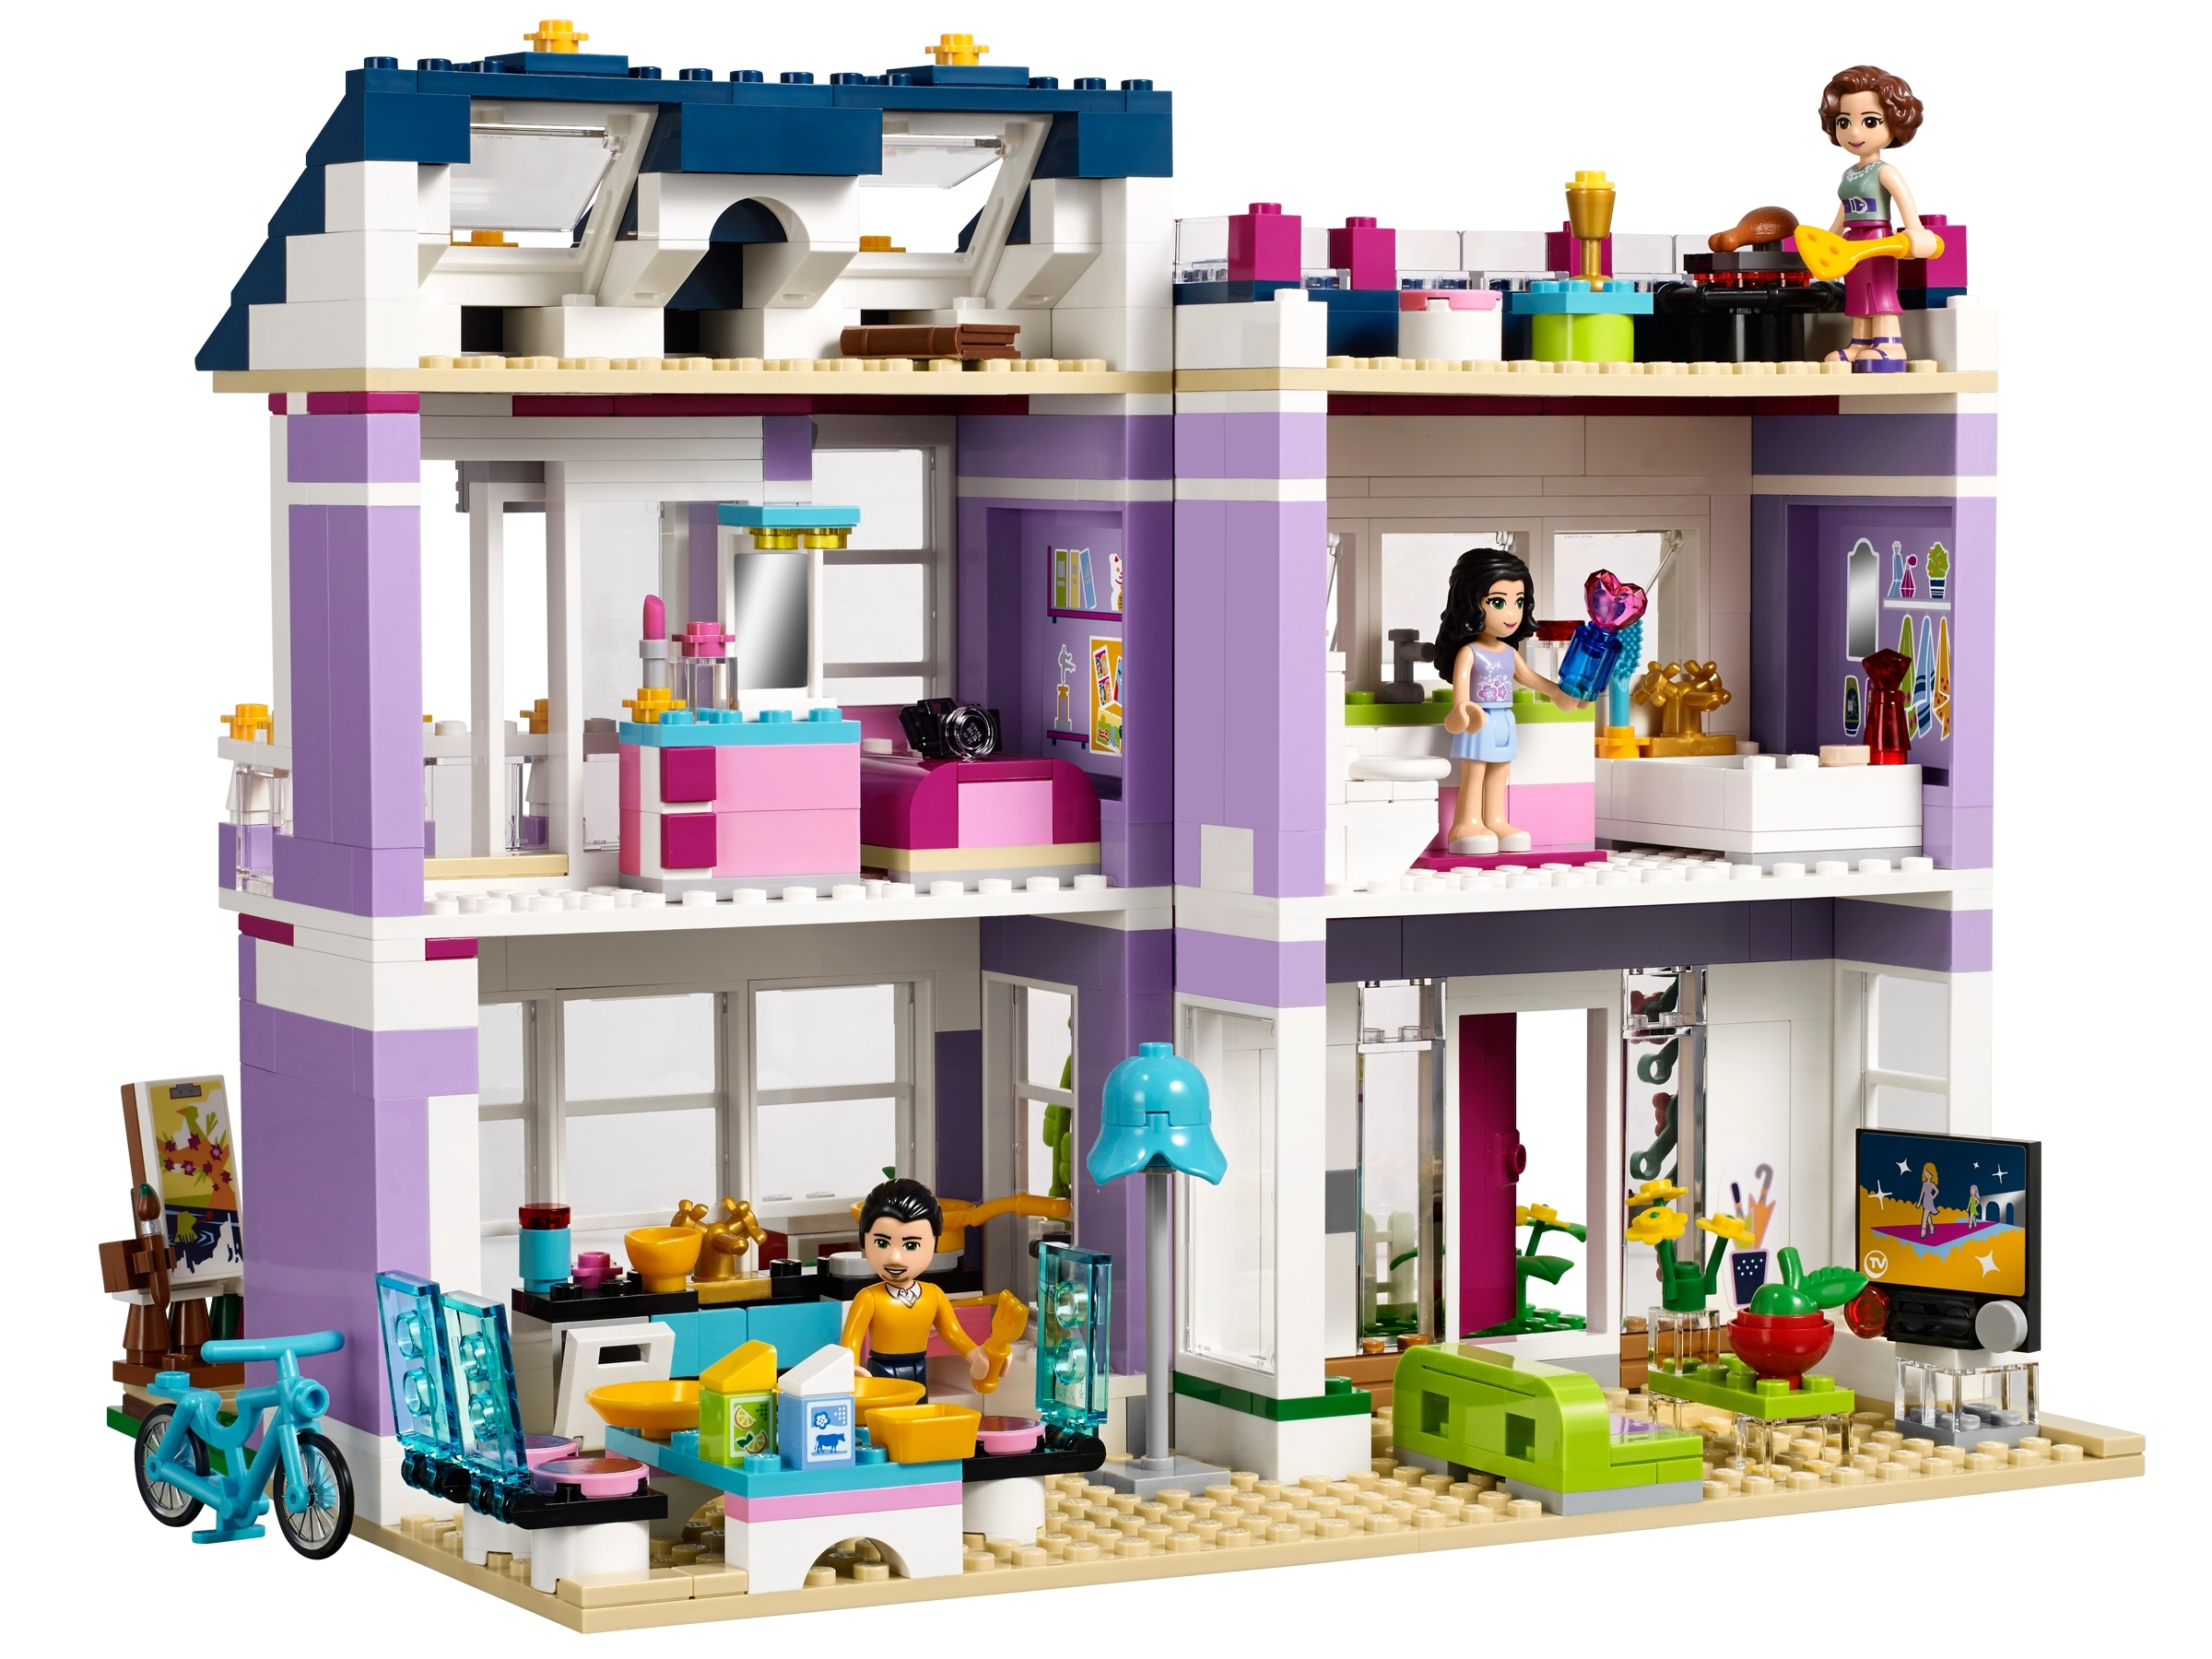 Emma S House 41095 Friends Buy Online At The Official Lego Shop Us